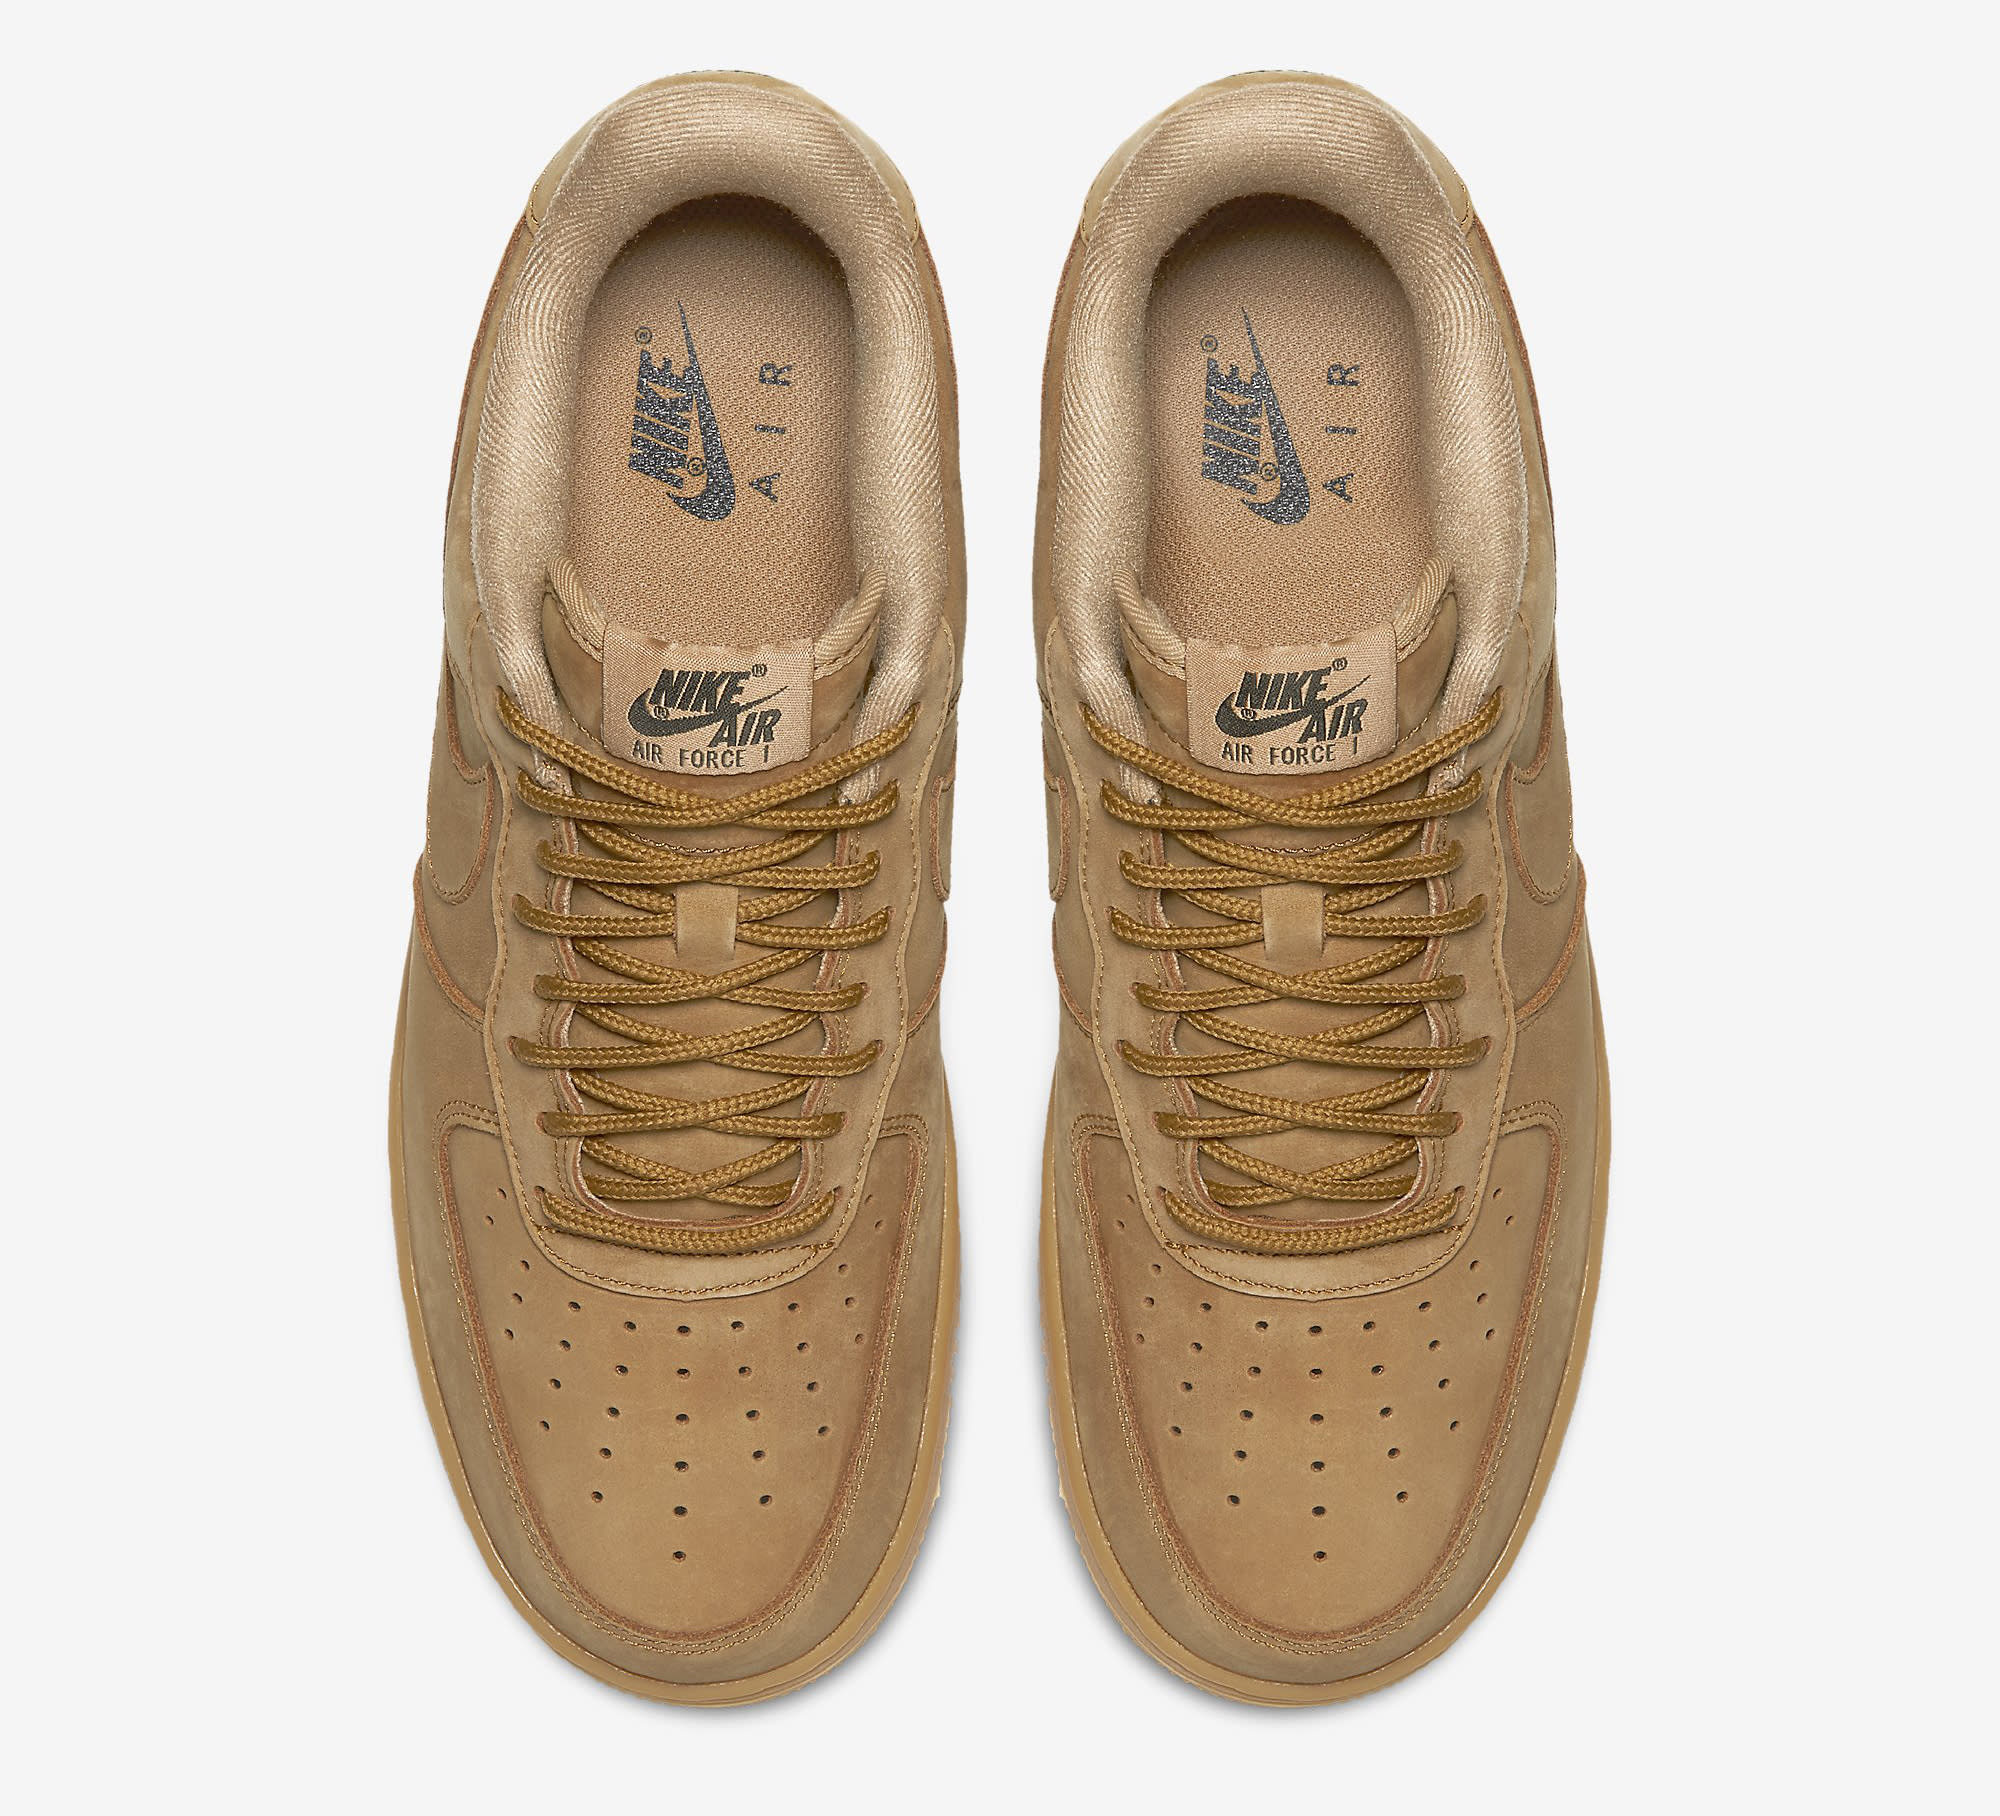 Wheat Nike Air Force 1 Low AA4016-200 Top